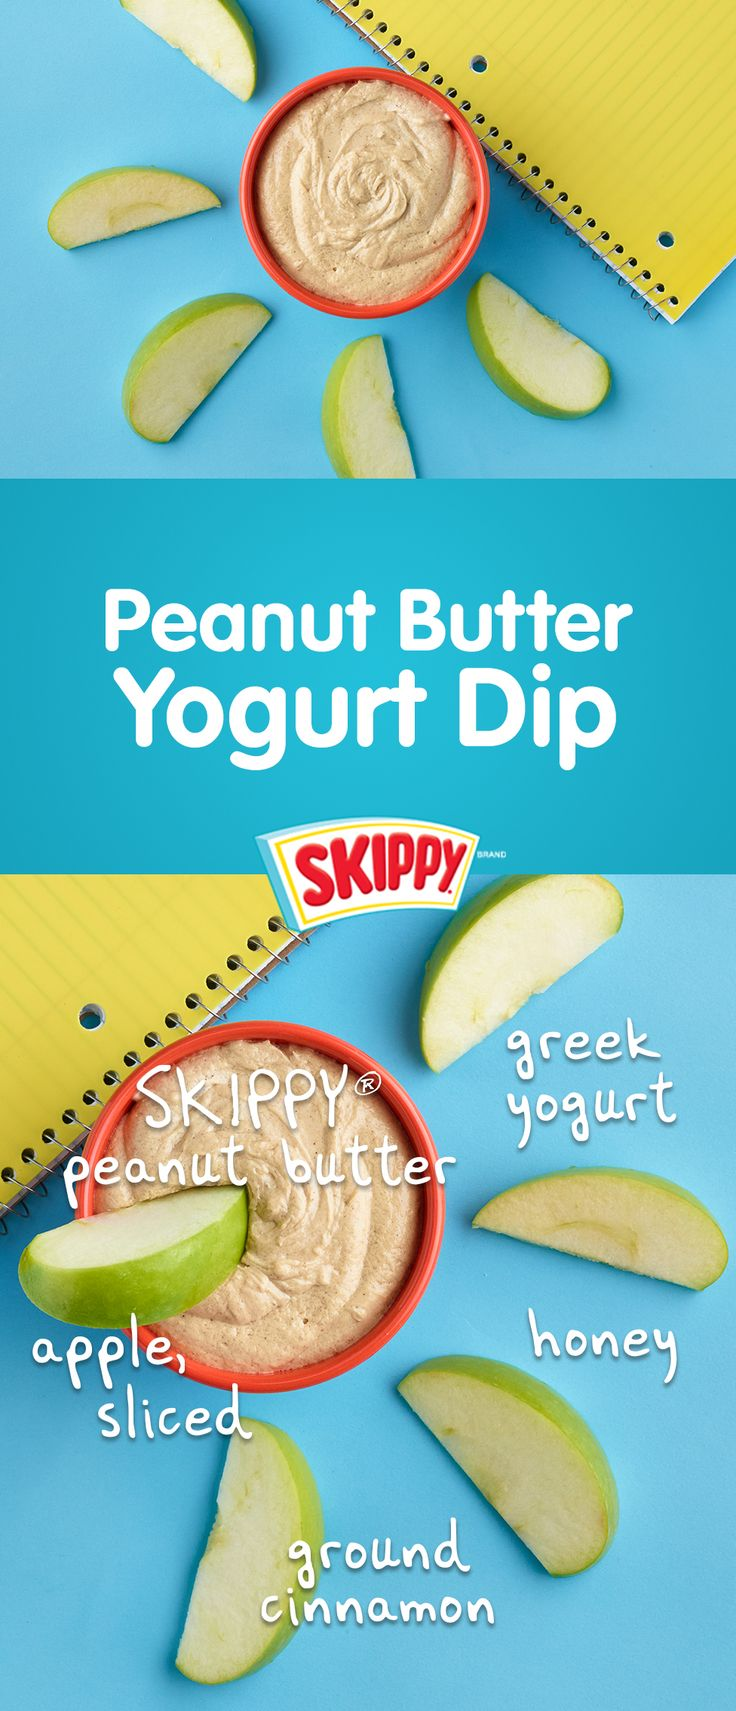 ½ cup SKIPPY® creamy peanut butter 1 cup Greek yogurt  2 tablespoons milk 1 tablespoon honey ¼ teaspoon ground cinnamon 1 teaspoon vanilla extract 1 large apple, sliced In small microwave safe bowl, heat peanut butter on HIGH 20 seconds. Stir in yogurt and next 4 ingredients until smooth. Serve with apple slices.